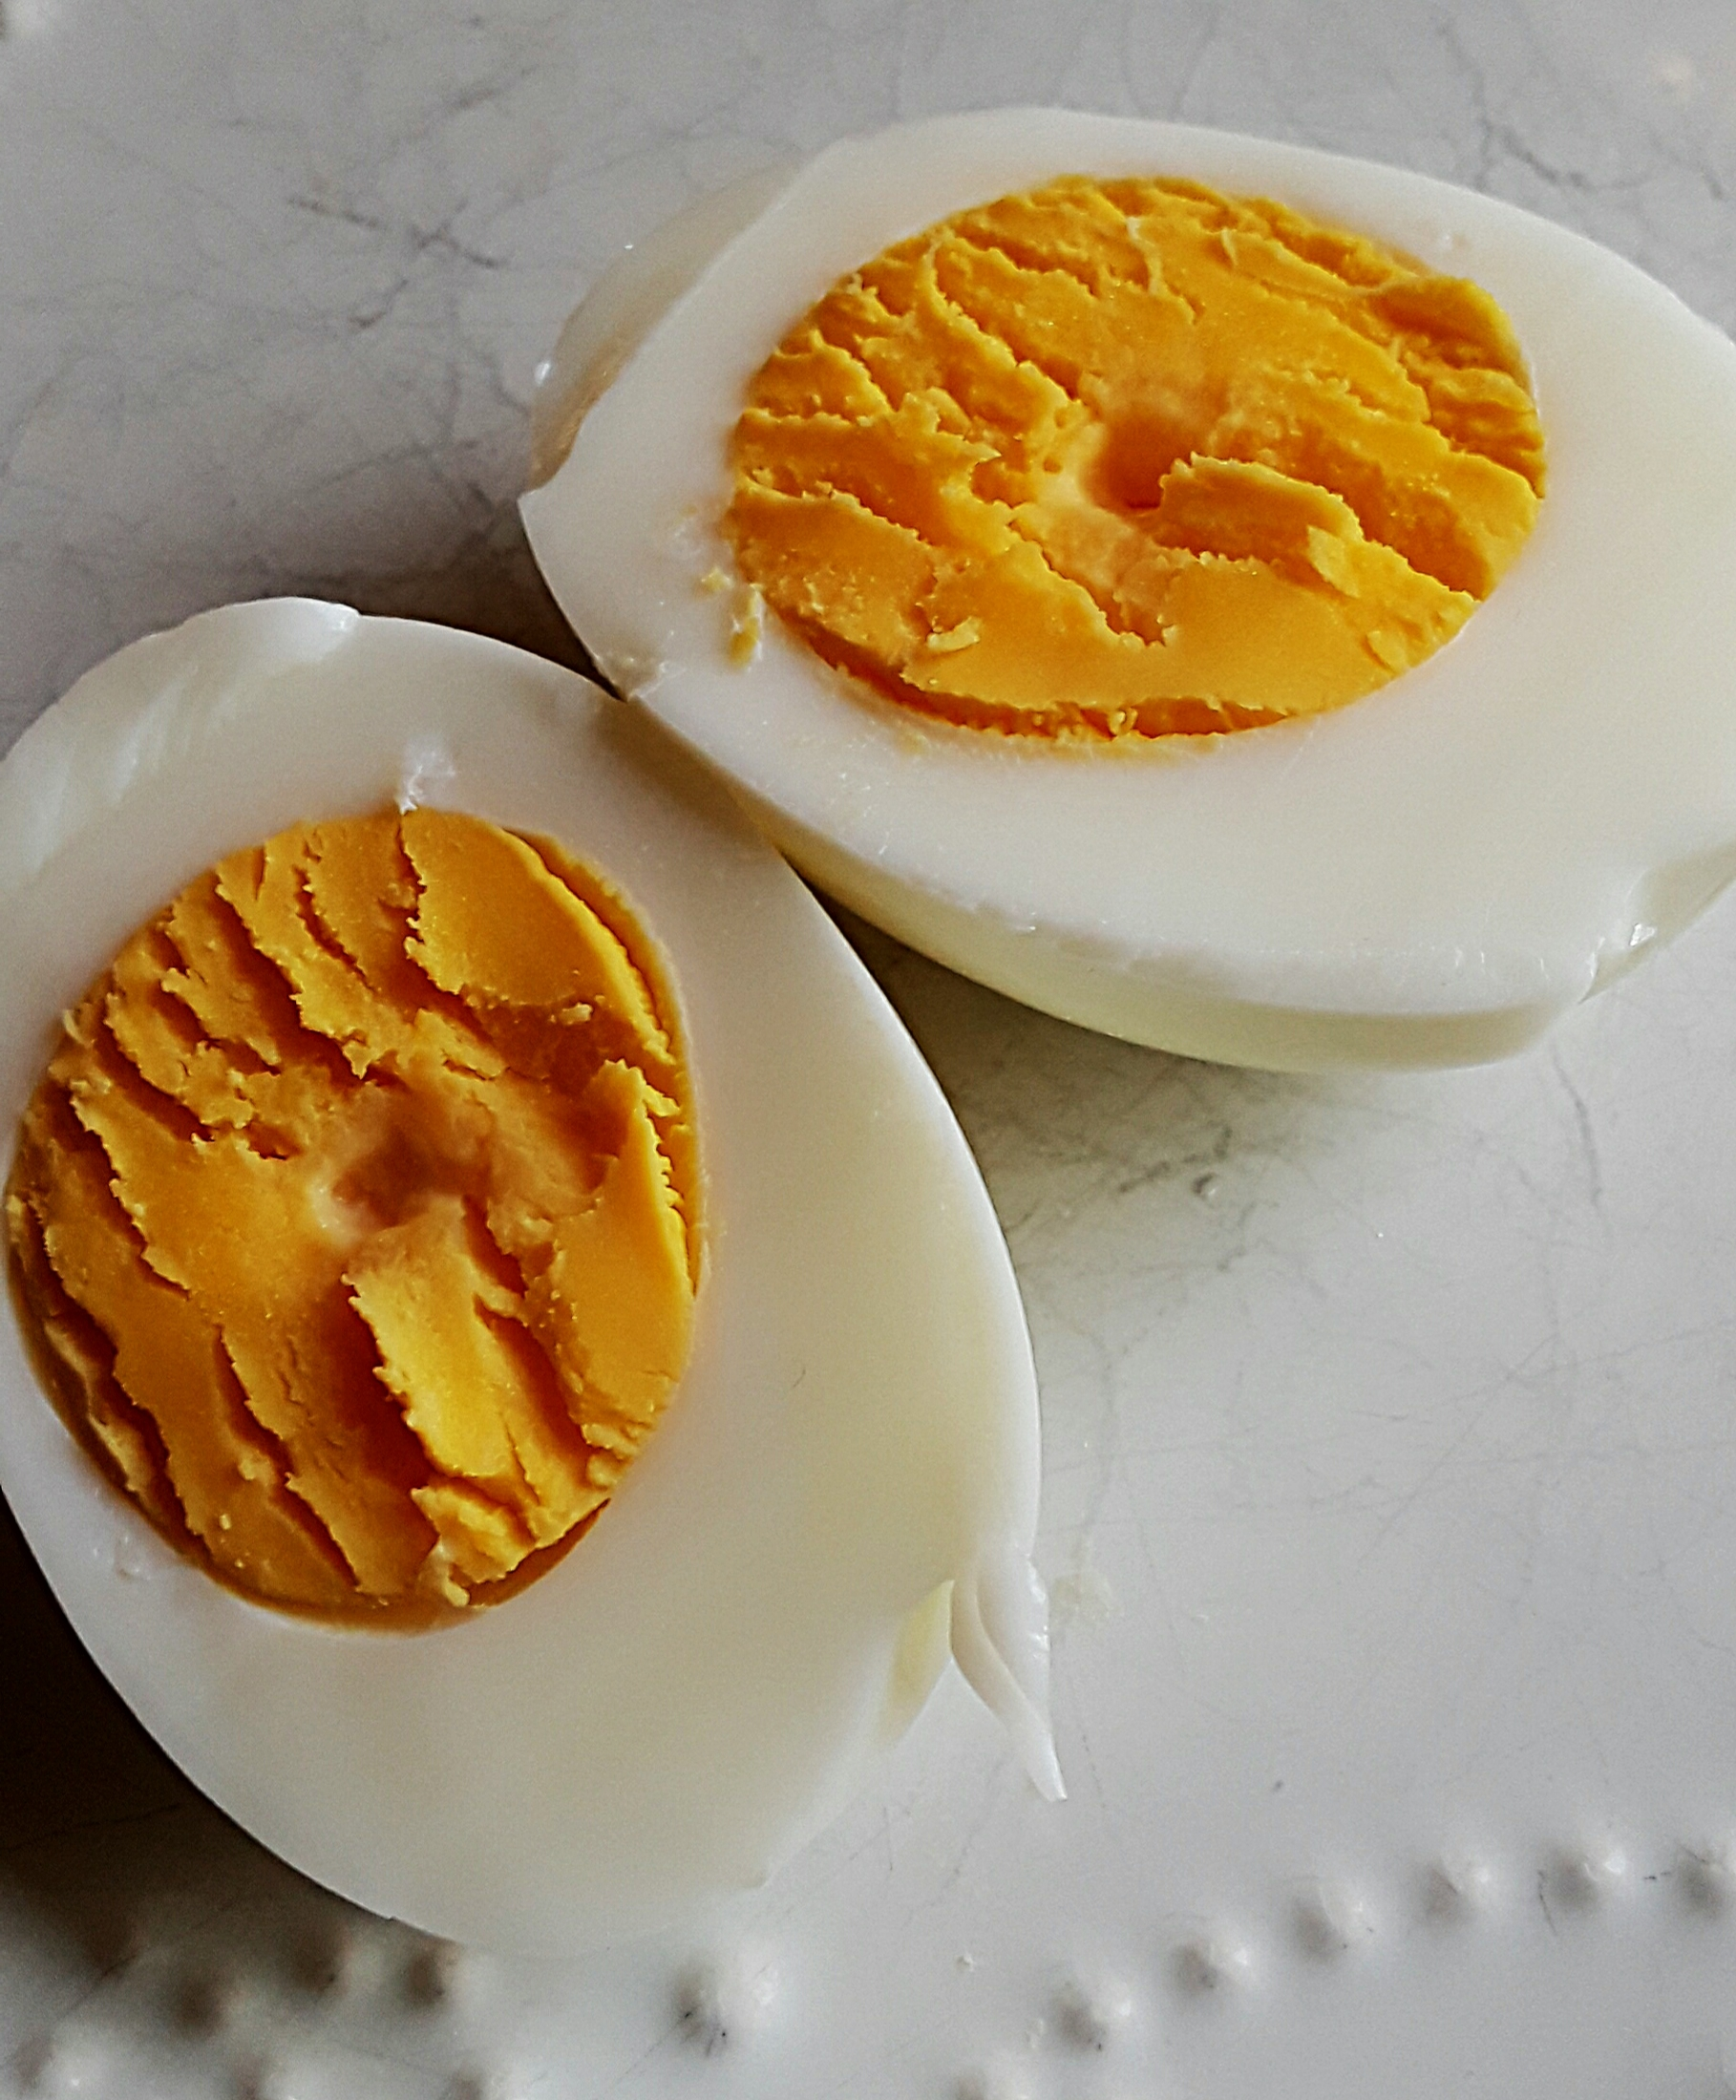 halved hard-boiled eggs show a rich yellow yolk